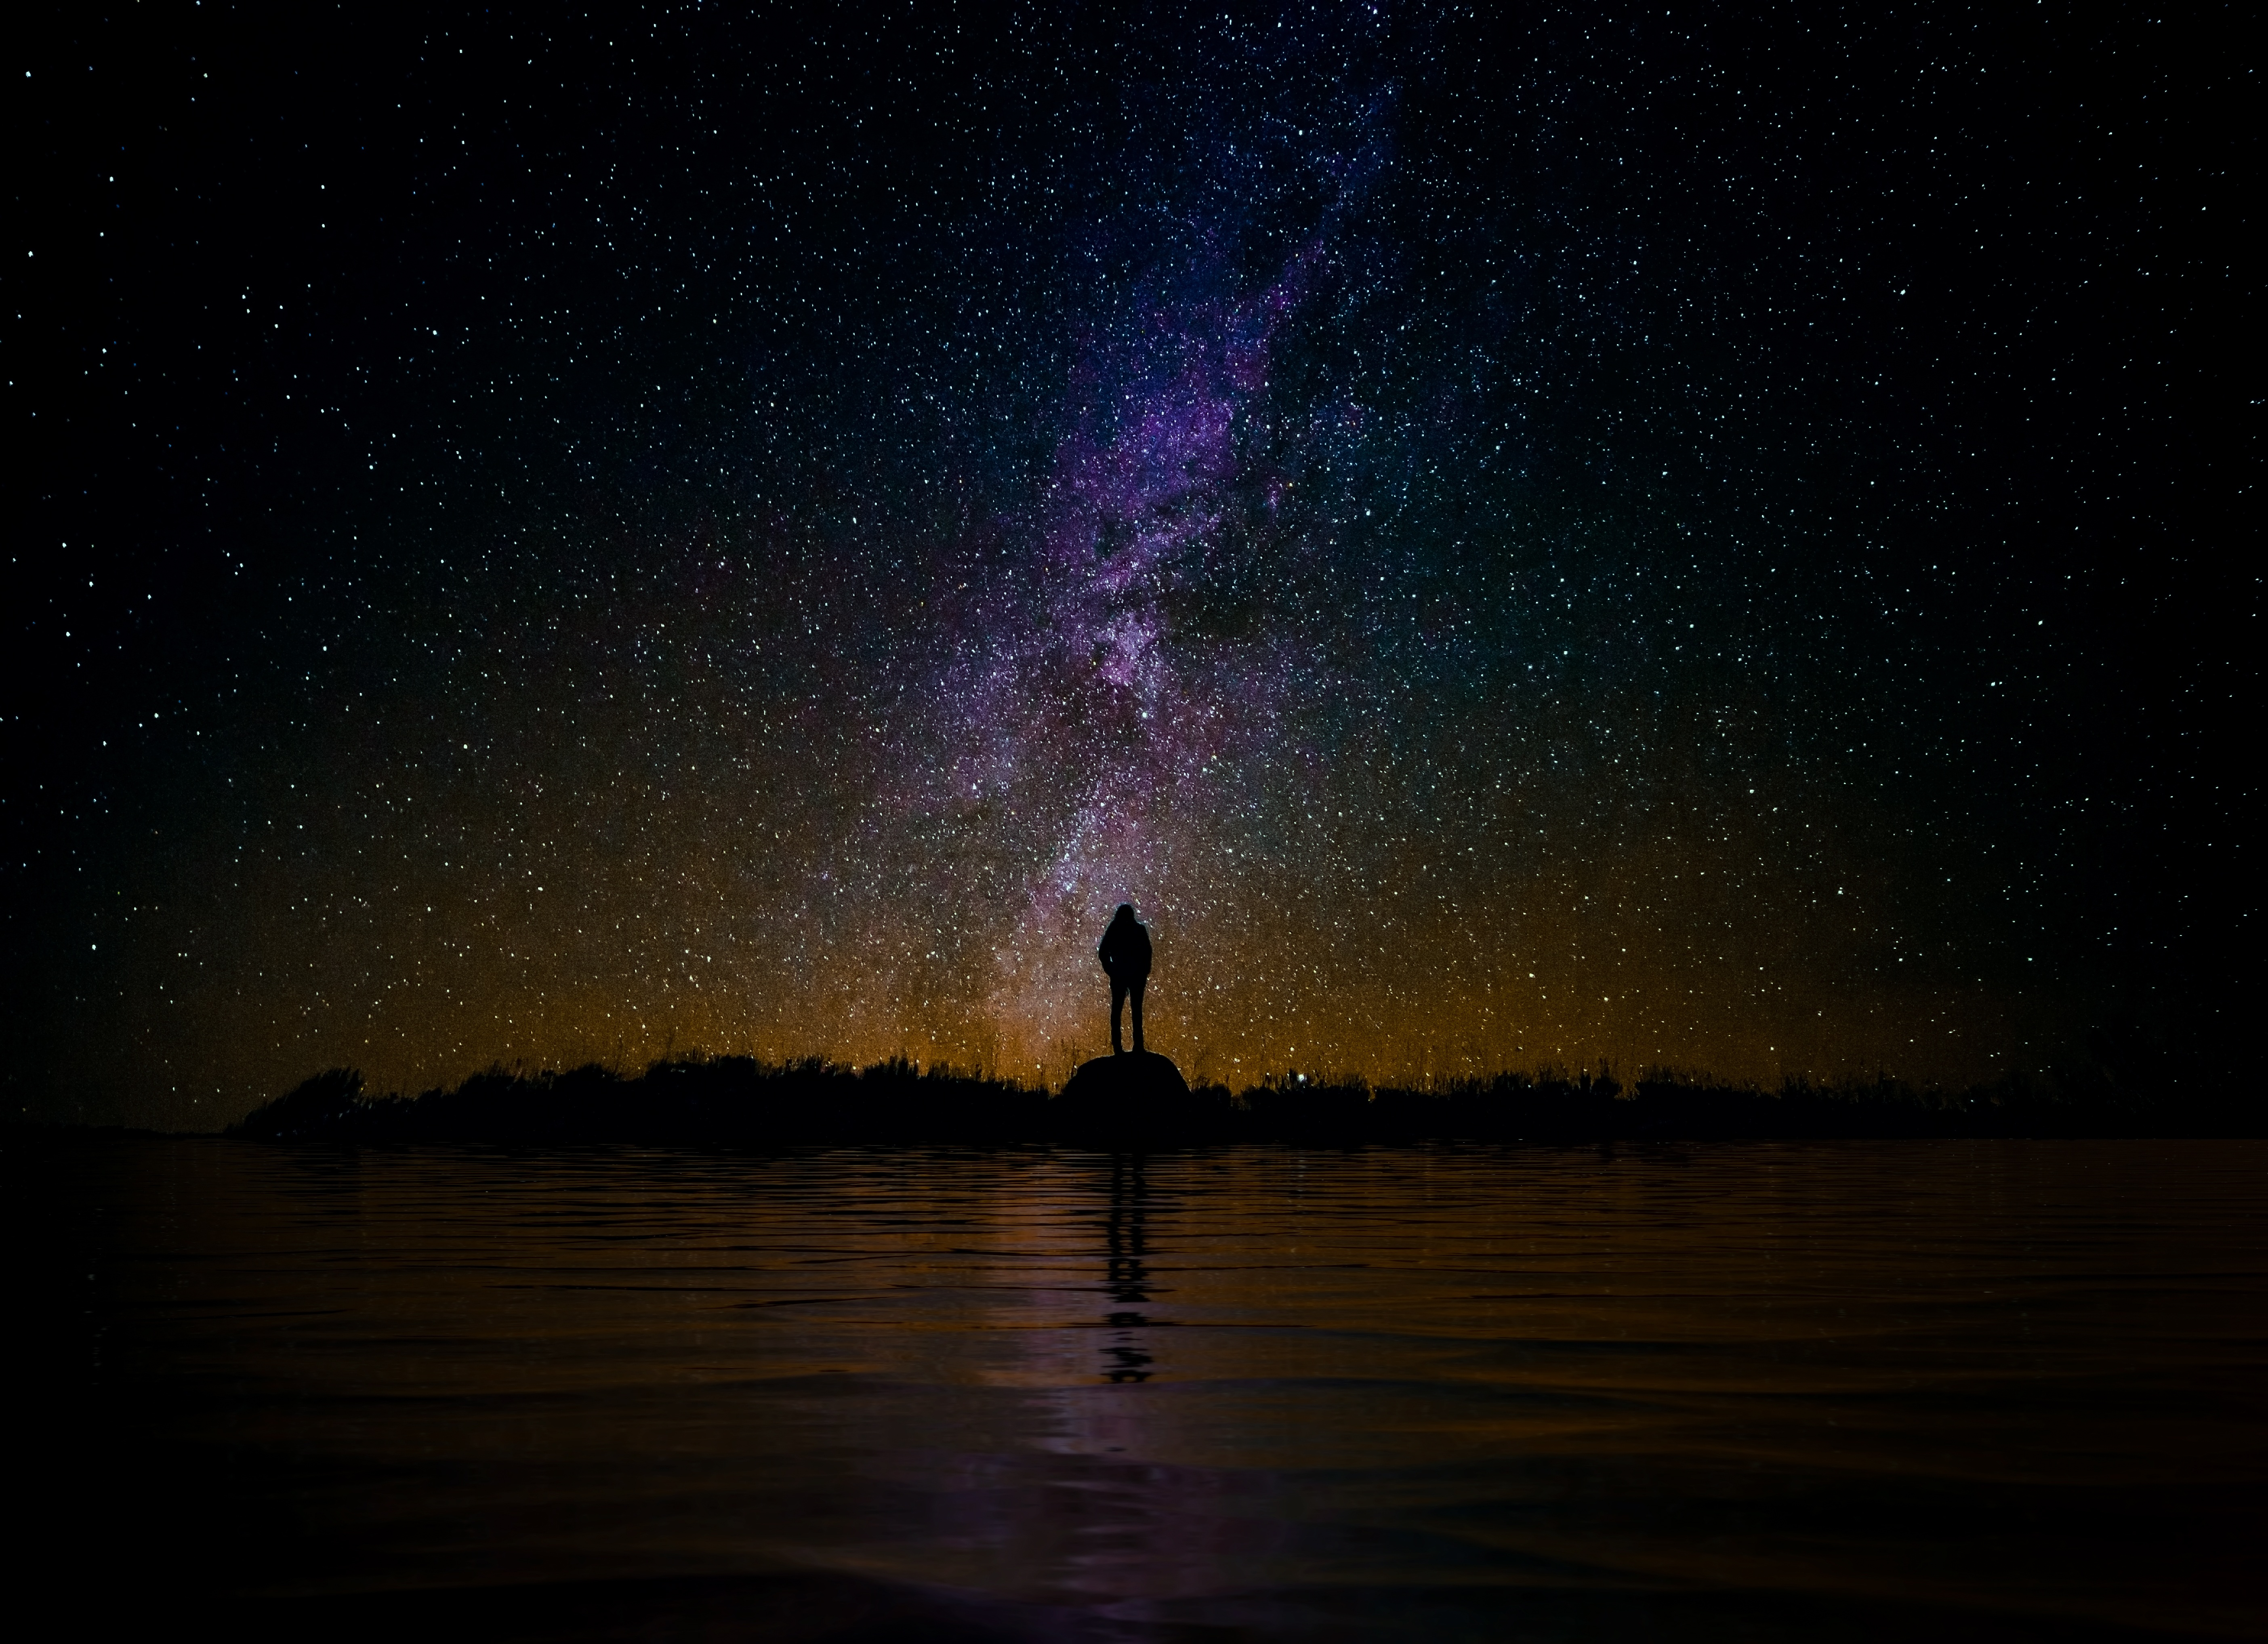 People 5615x4070 night sky skyscape landscape silhouette stars starry night water sea reflection dark Milky Way space universe galaxy alone loneliness